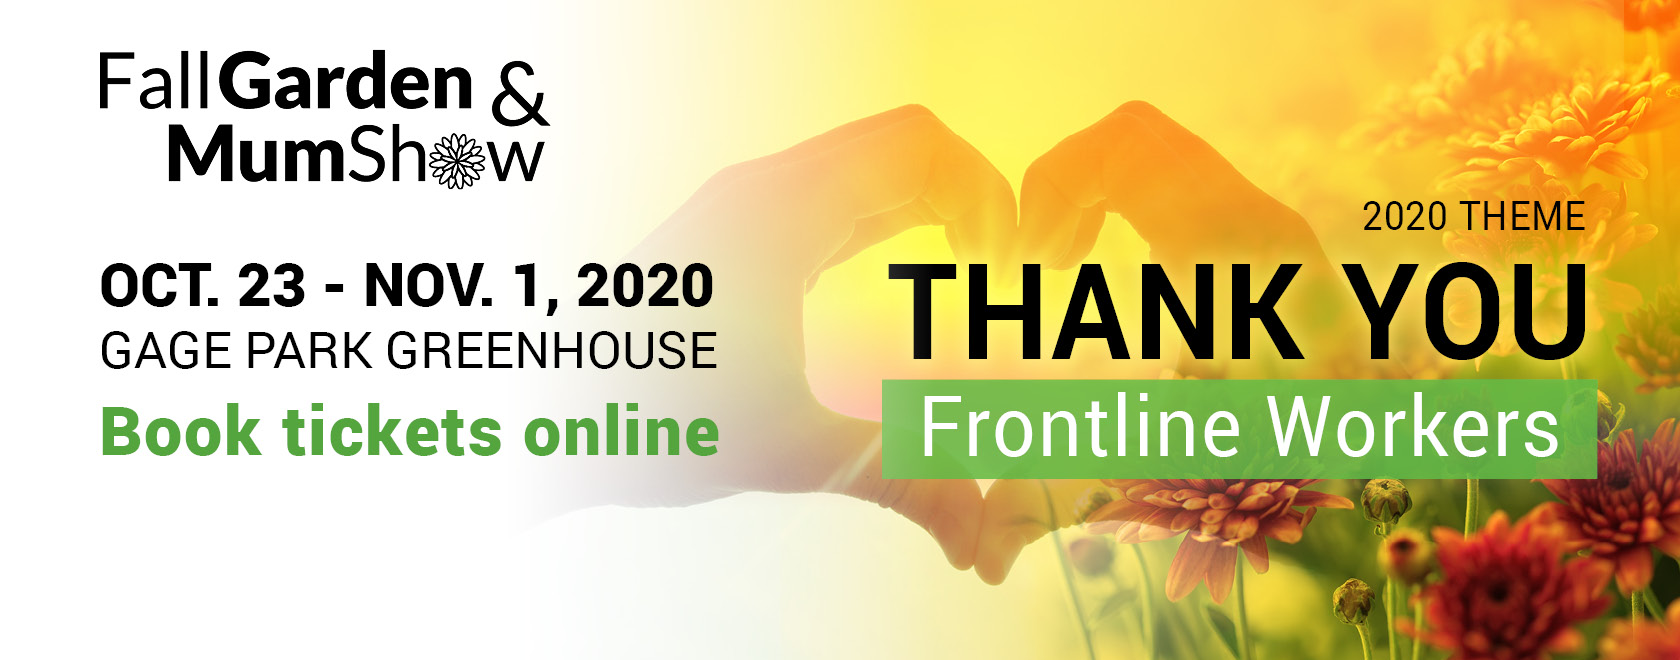 Attend the 2020 Mum Show in honour of Frontline Workers for free